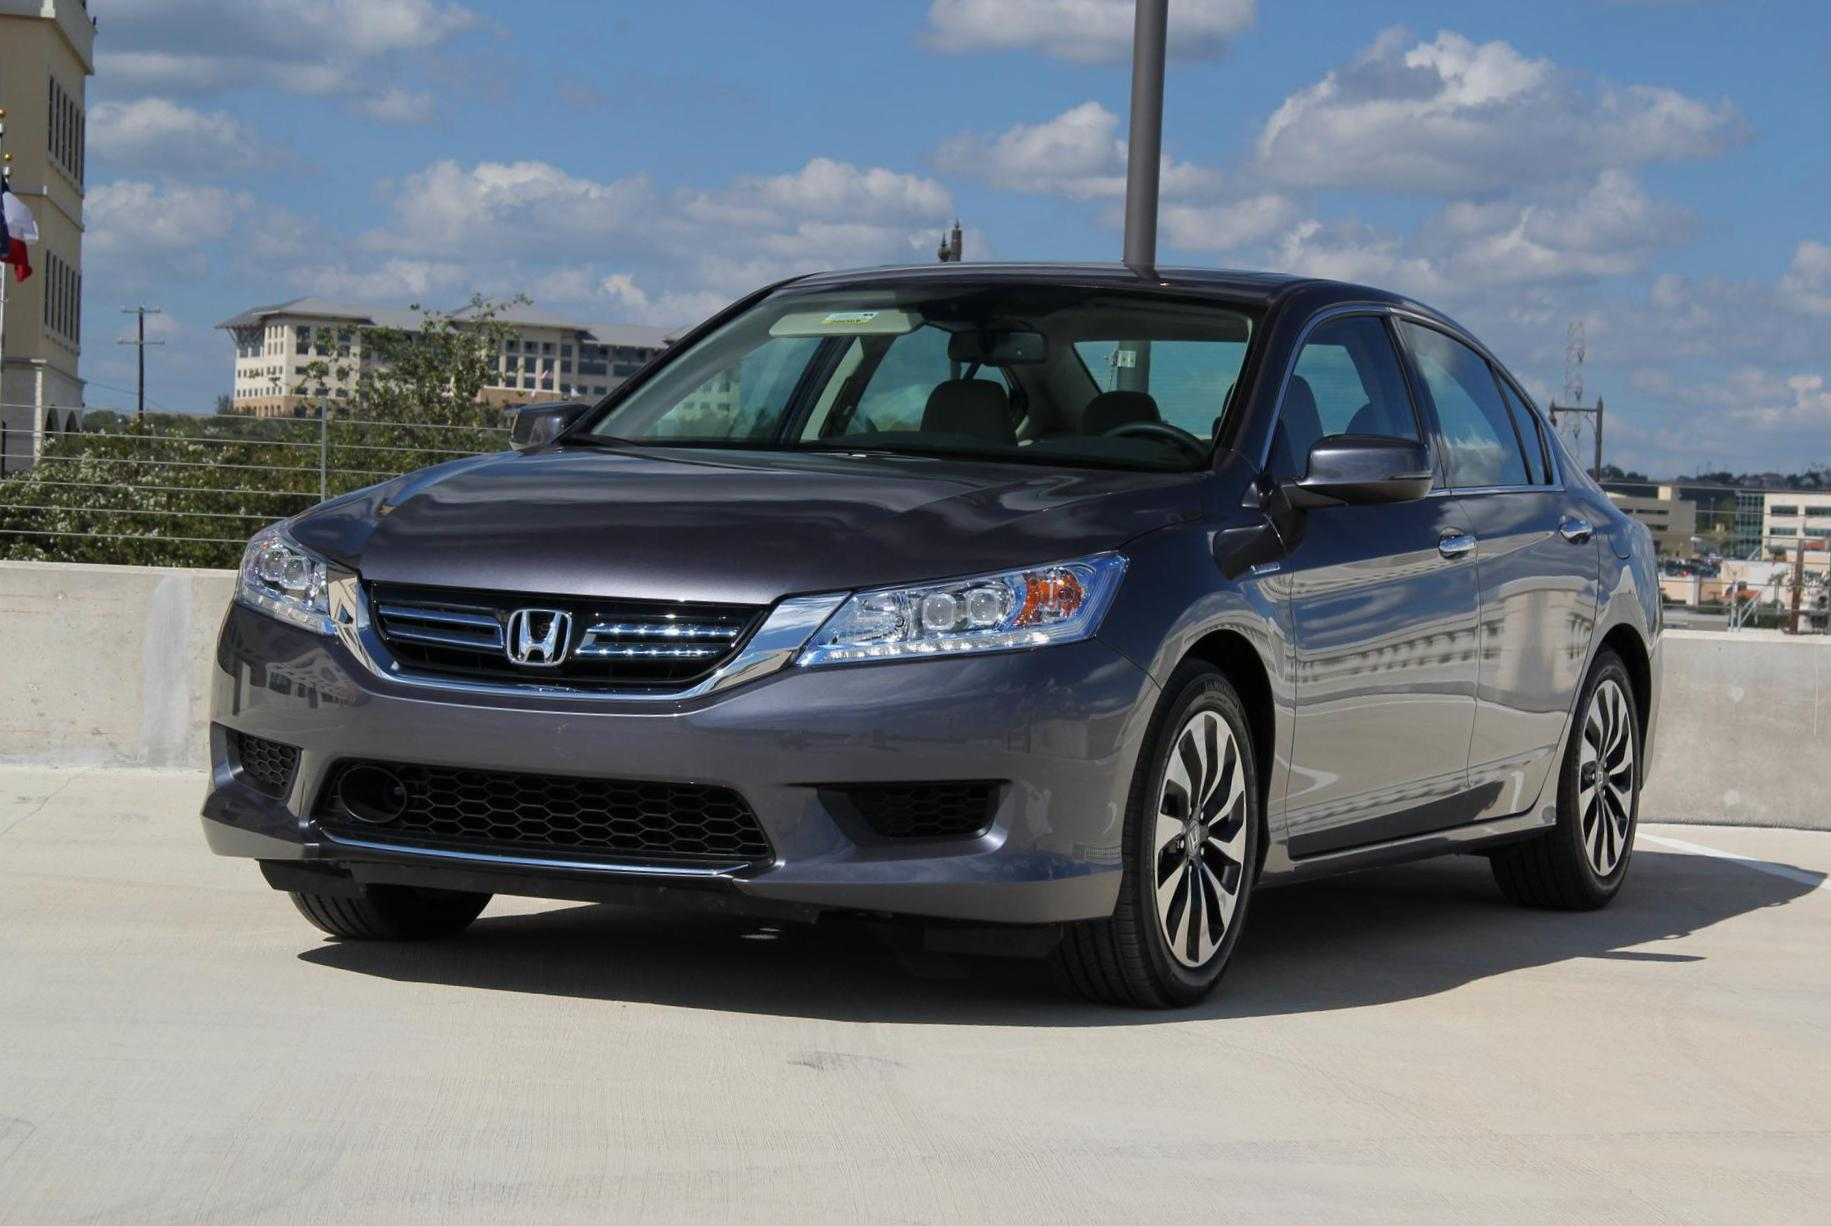 Honda Accord Specs 2009